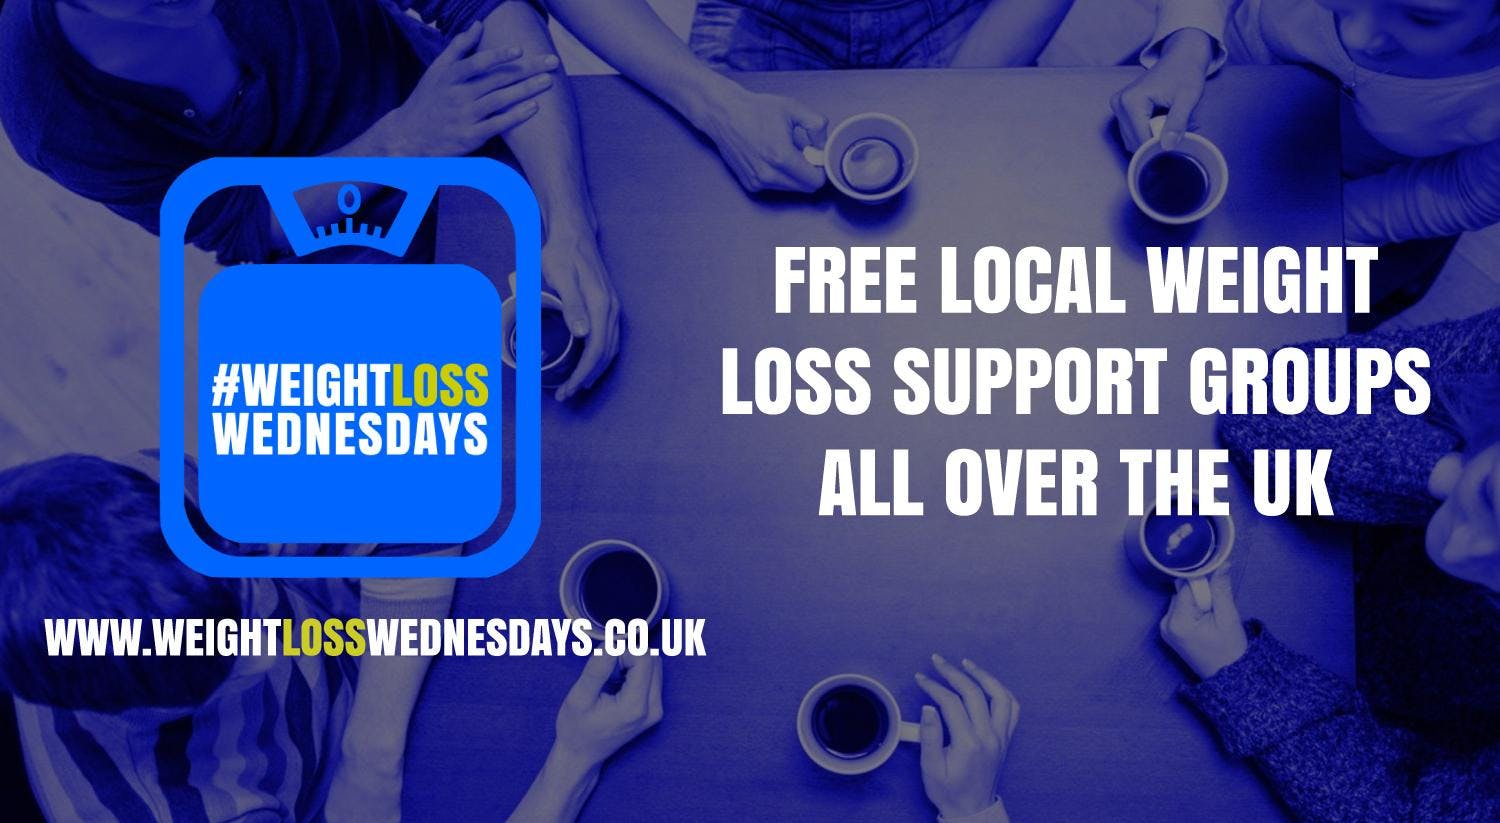 WEIGHT LOSS WEDNESDAYS! Free weekly support group in Oldbury